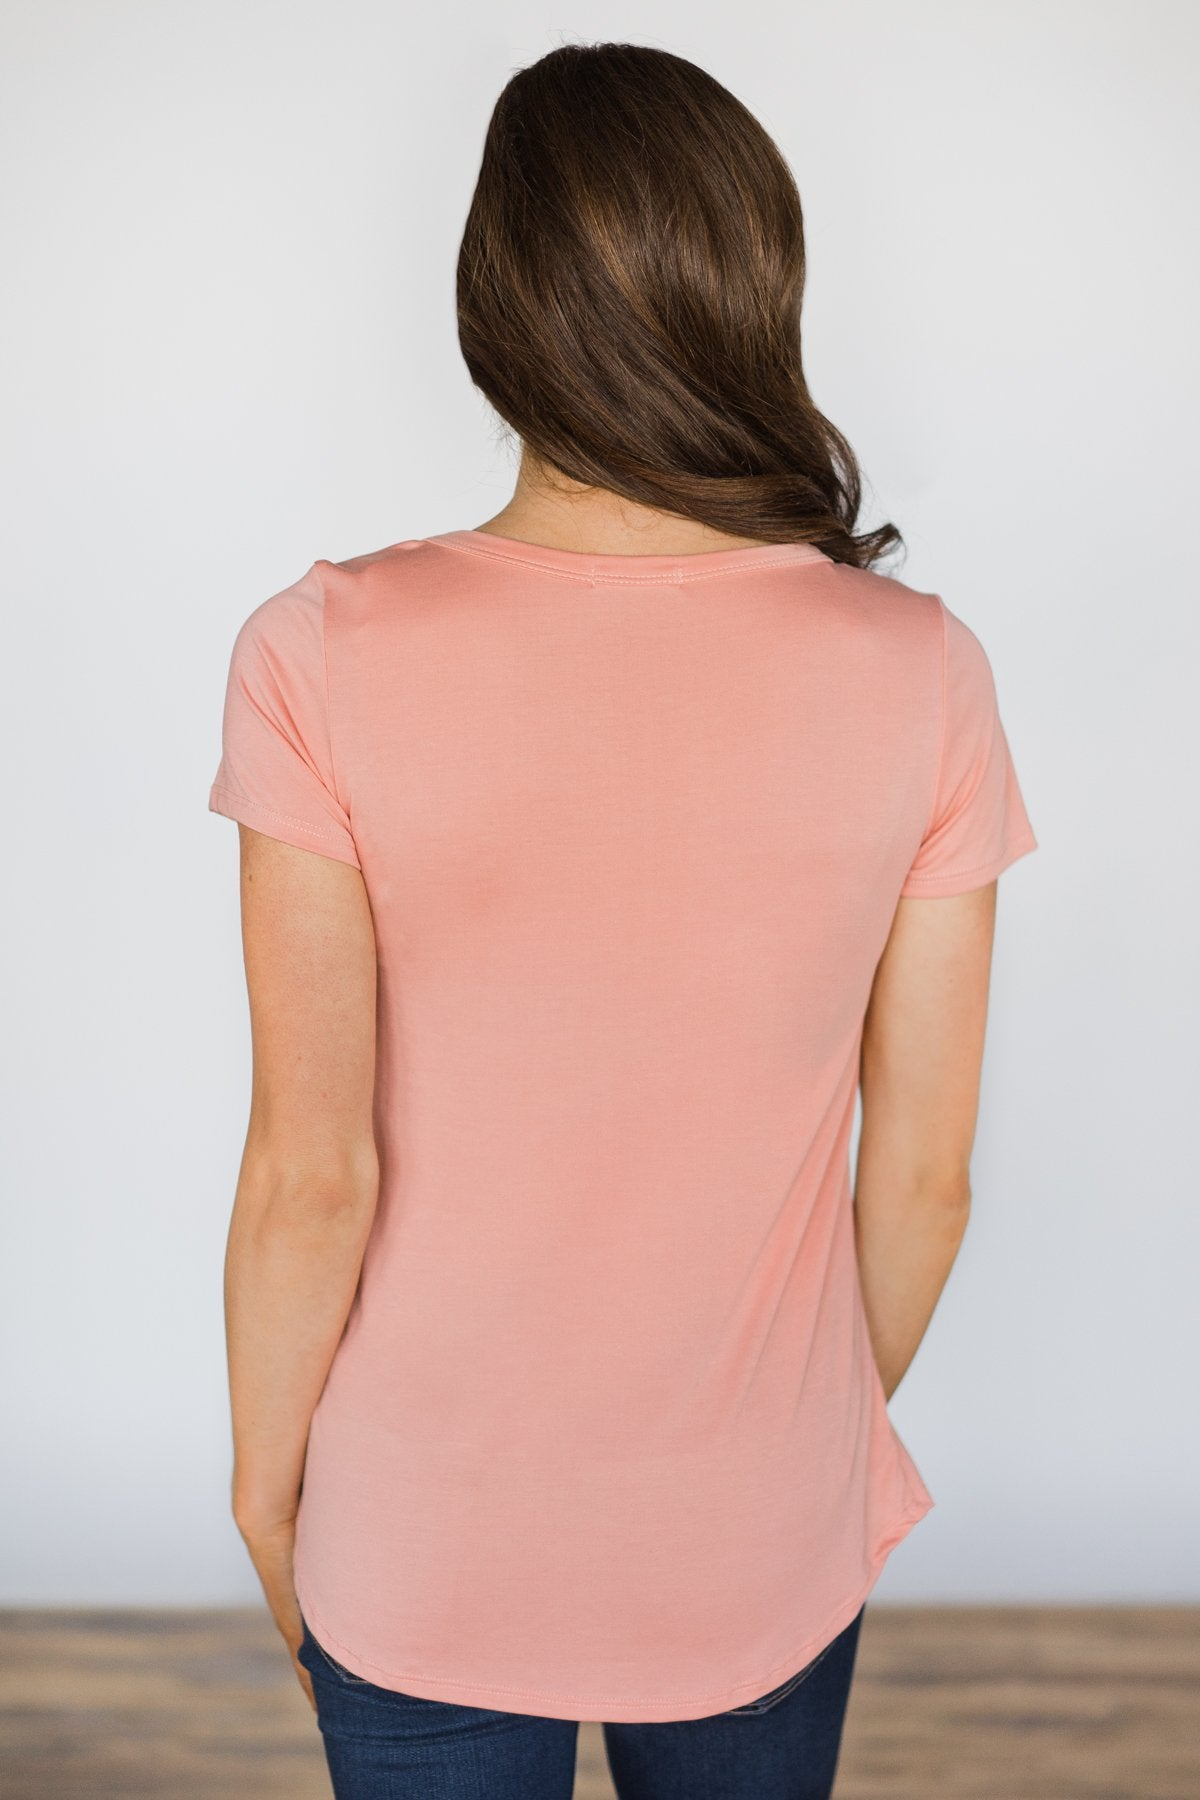 Loves Got a Hold on You Top ~ Peach